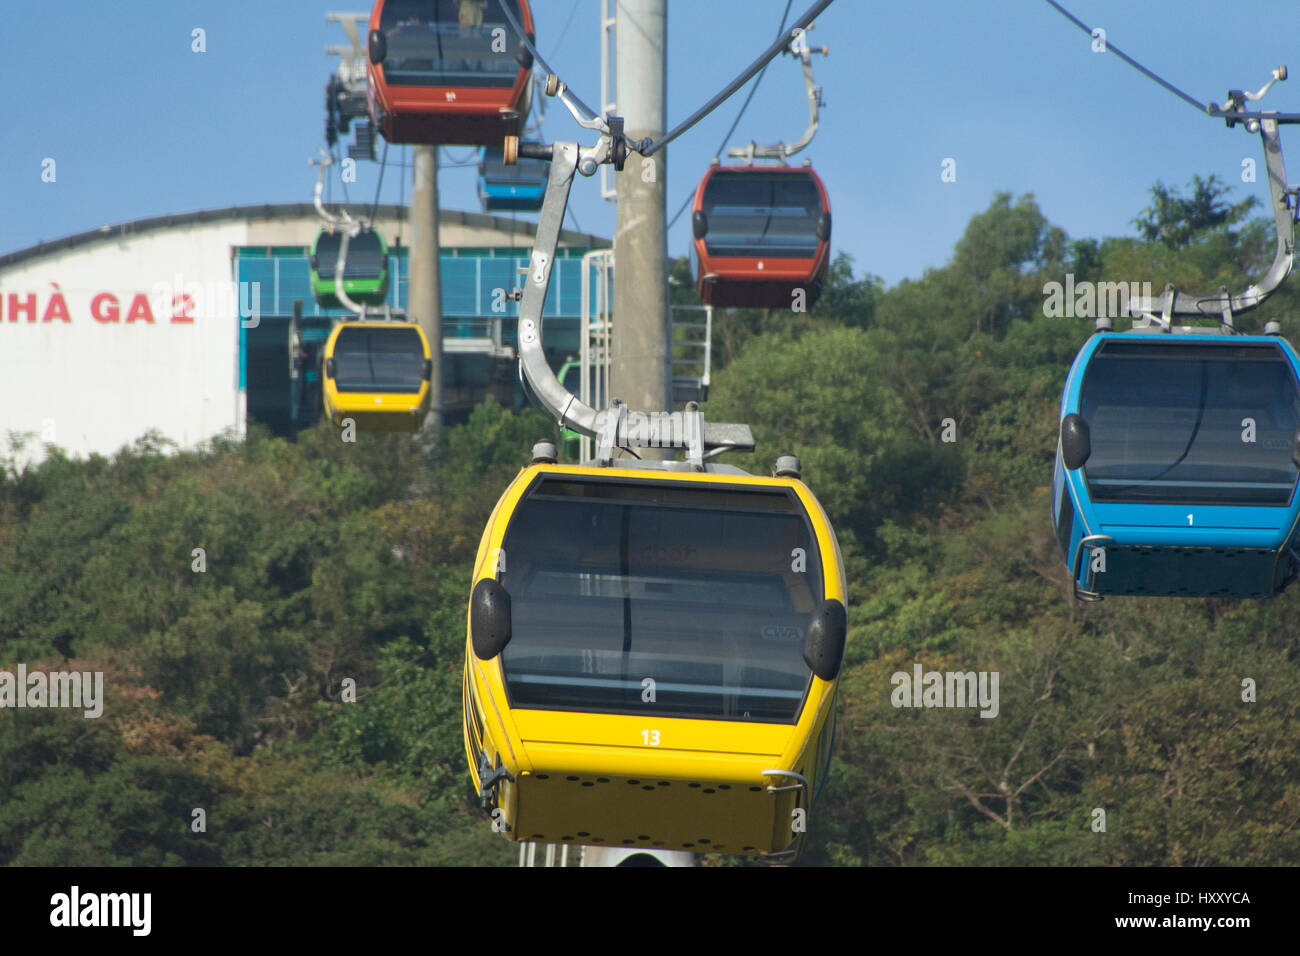 The gondole ride up to the Hồ Mây amusement park, at the Vietnamese seaside resort of Vung Tau Stock Photo